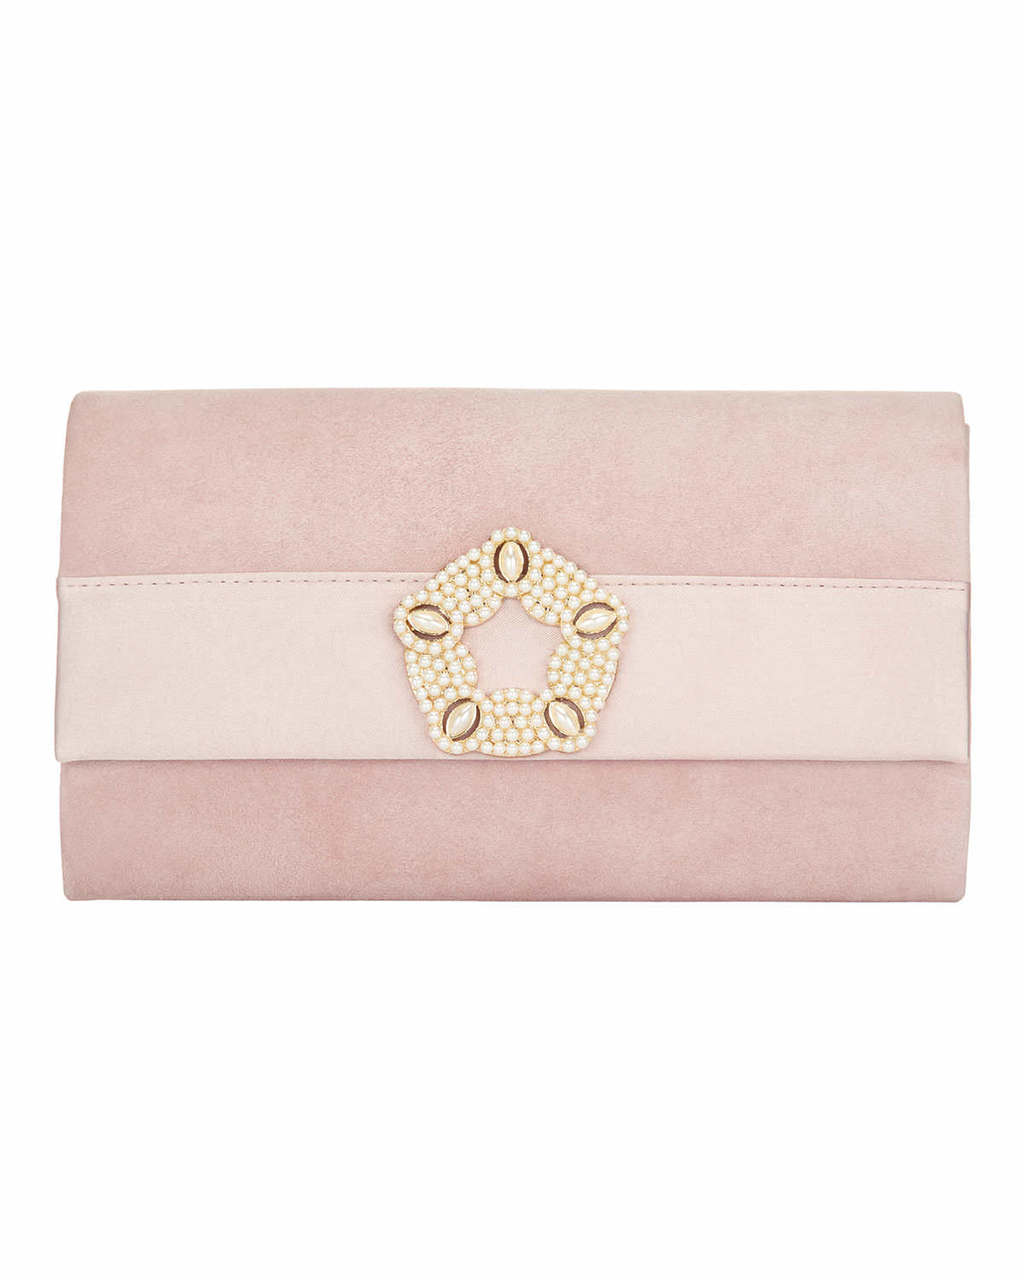 Georgie Suede Clutch - predominant colour: blush; occasions: evening, occasion; type of pattern: standard; style: clutch; length: hand carry; size: small; material: suede; pattern: plain; finish: plain; season: s/s 2016; wardrobe: event